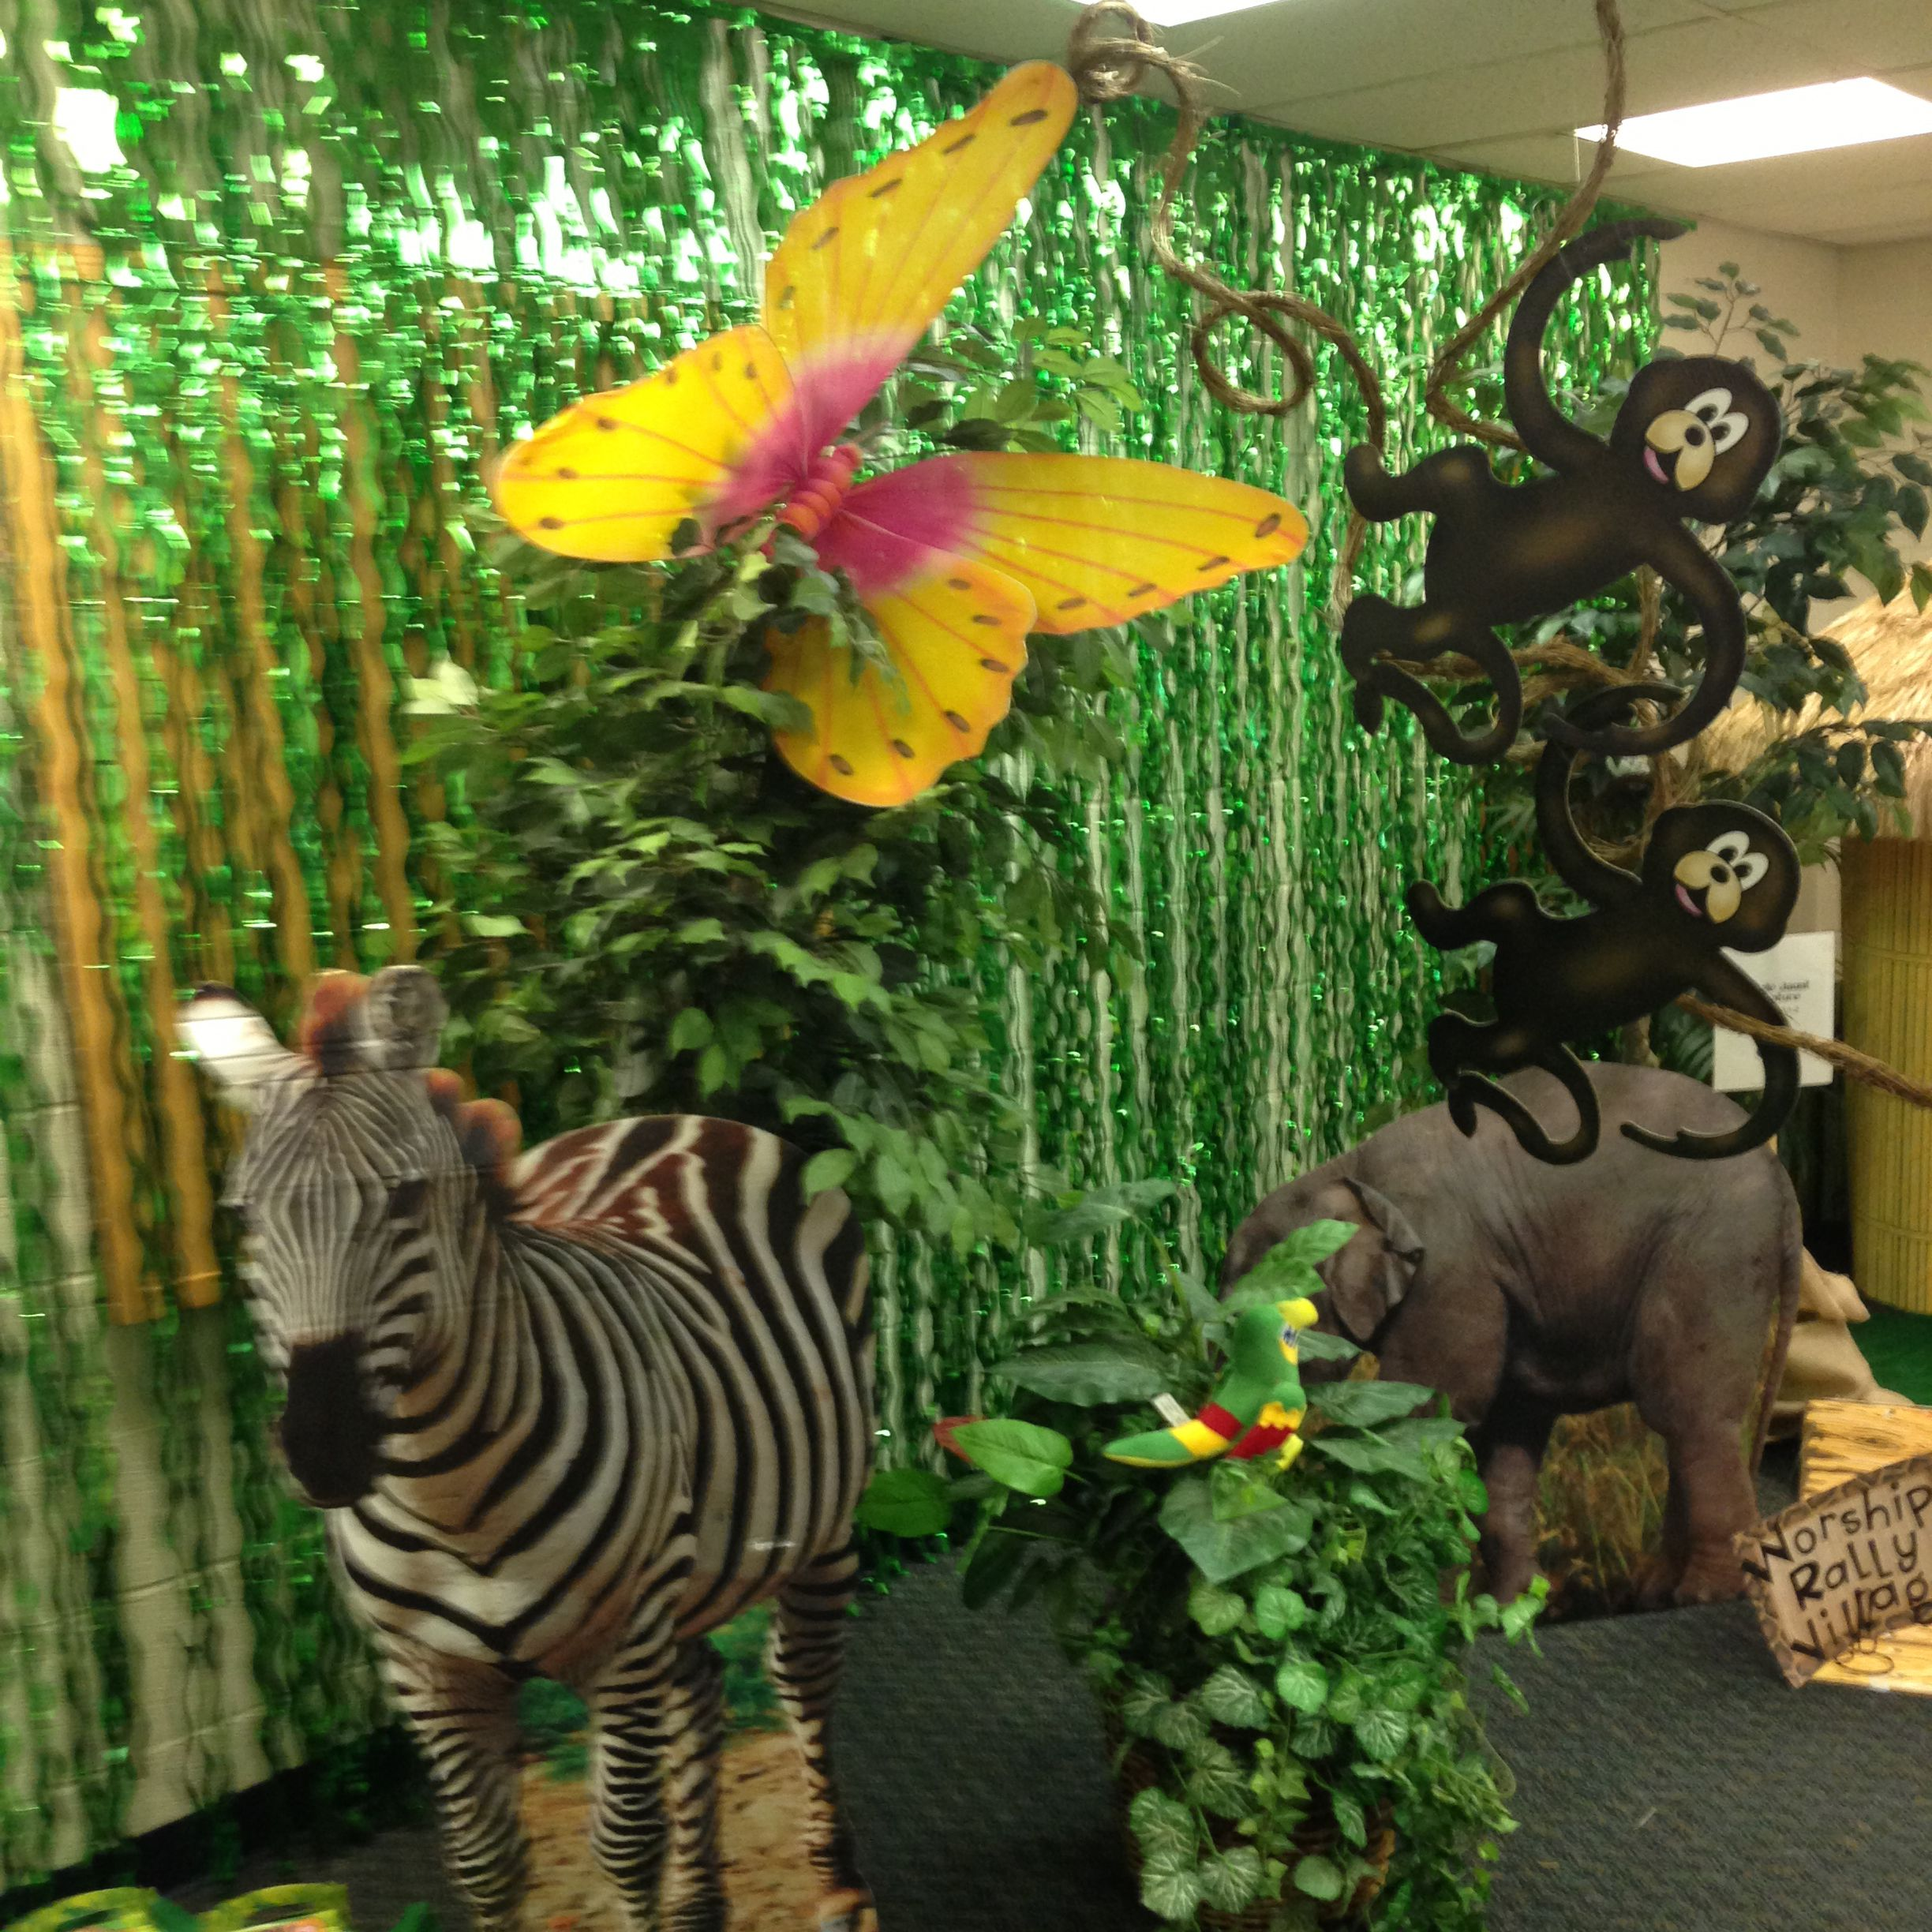 Vbs Preview Ft Worth Jungle Theme Decorations Vbs Themes